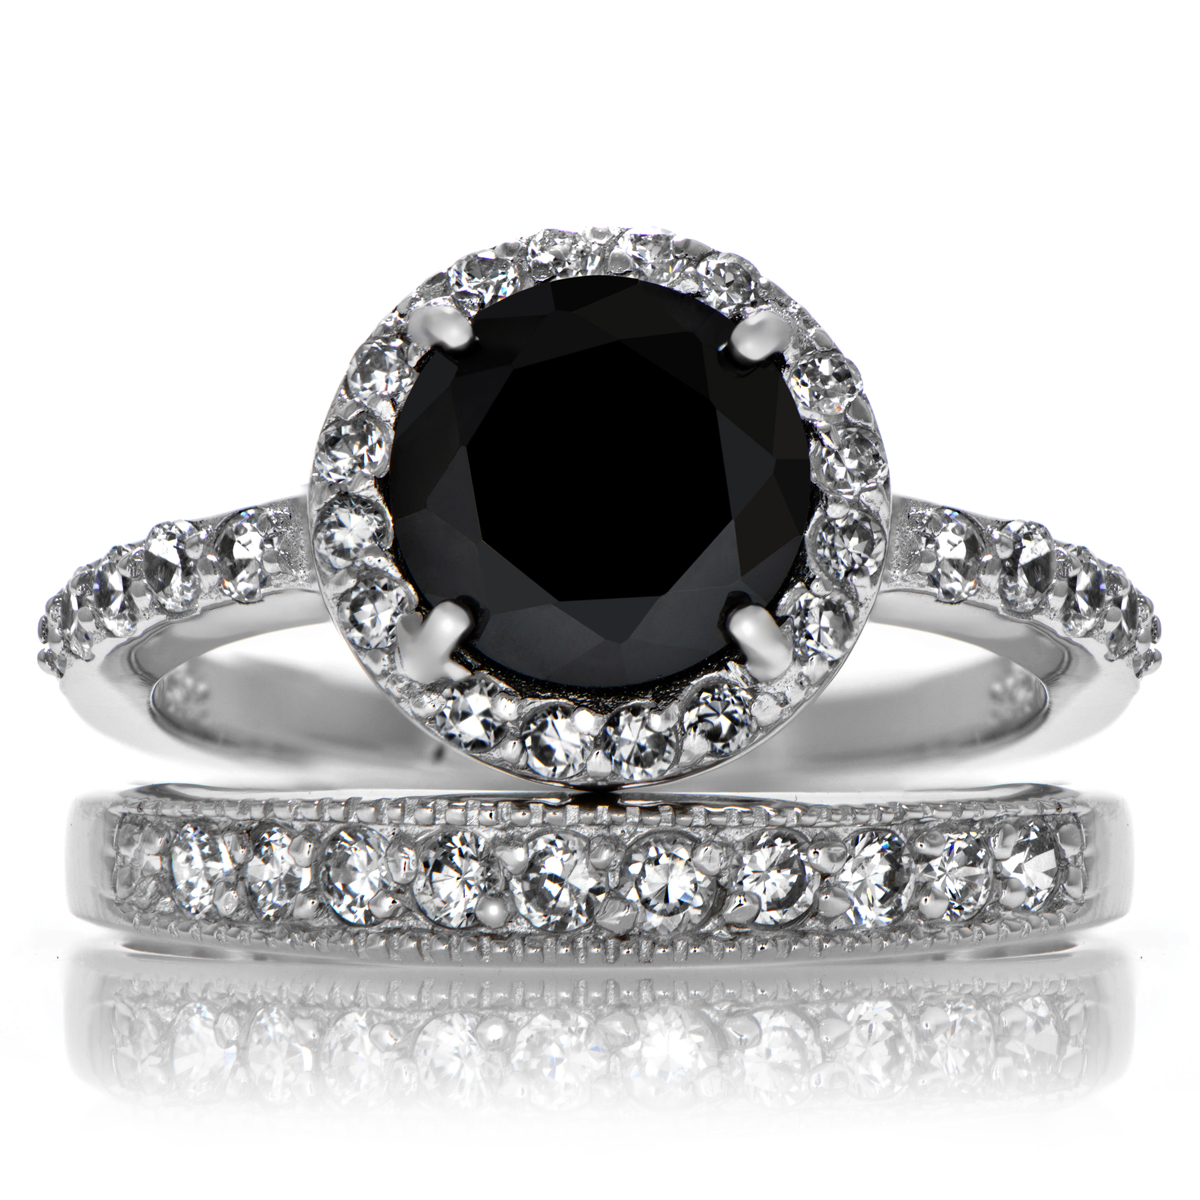 Carrie's Black Cz Ring Set